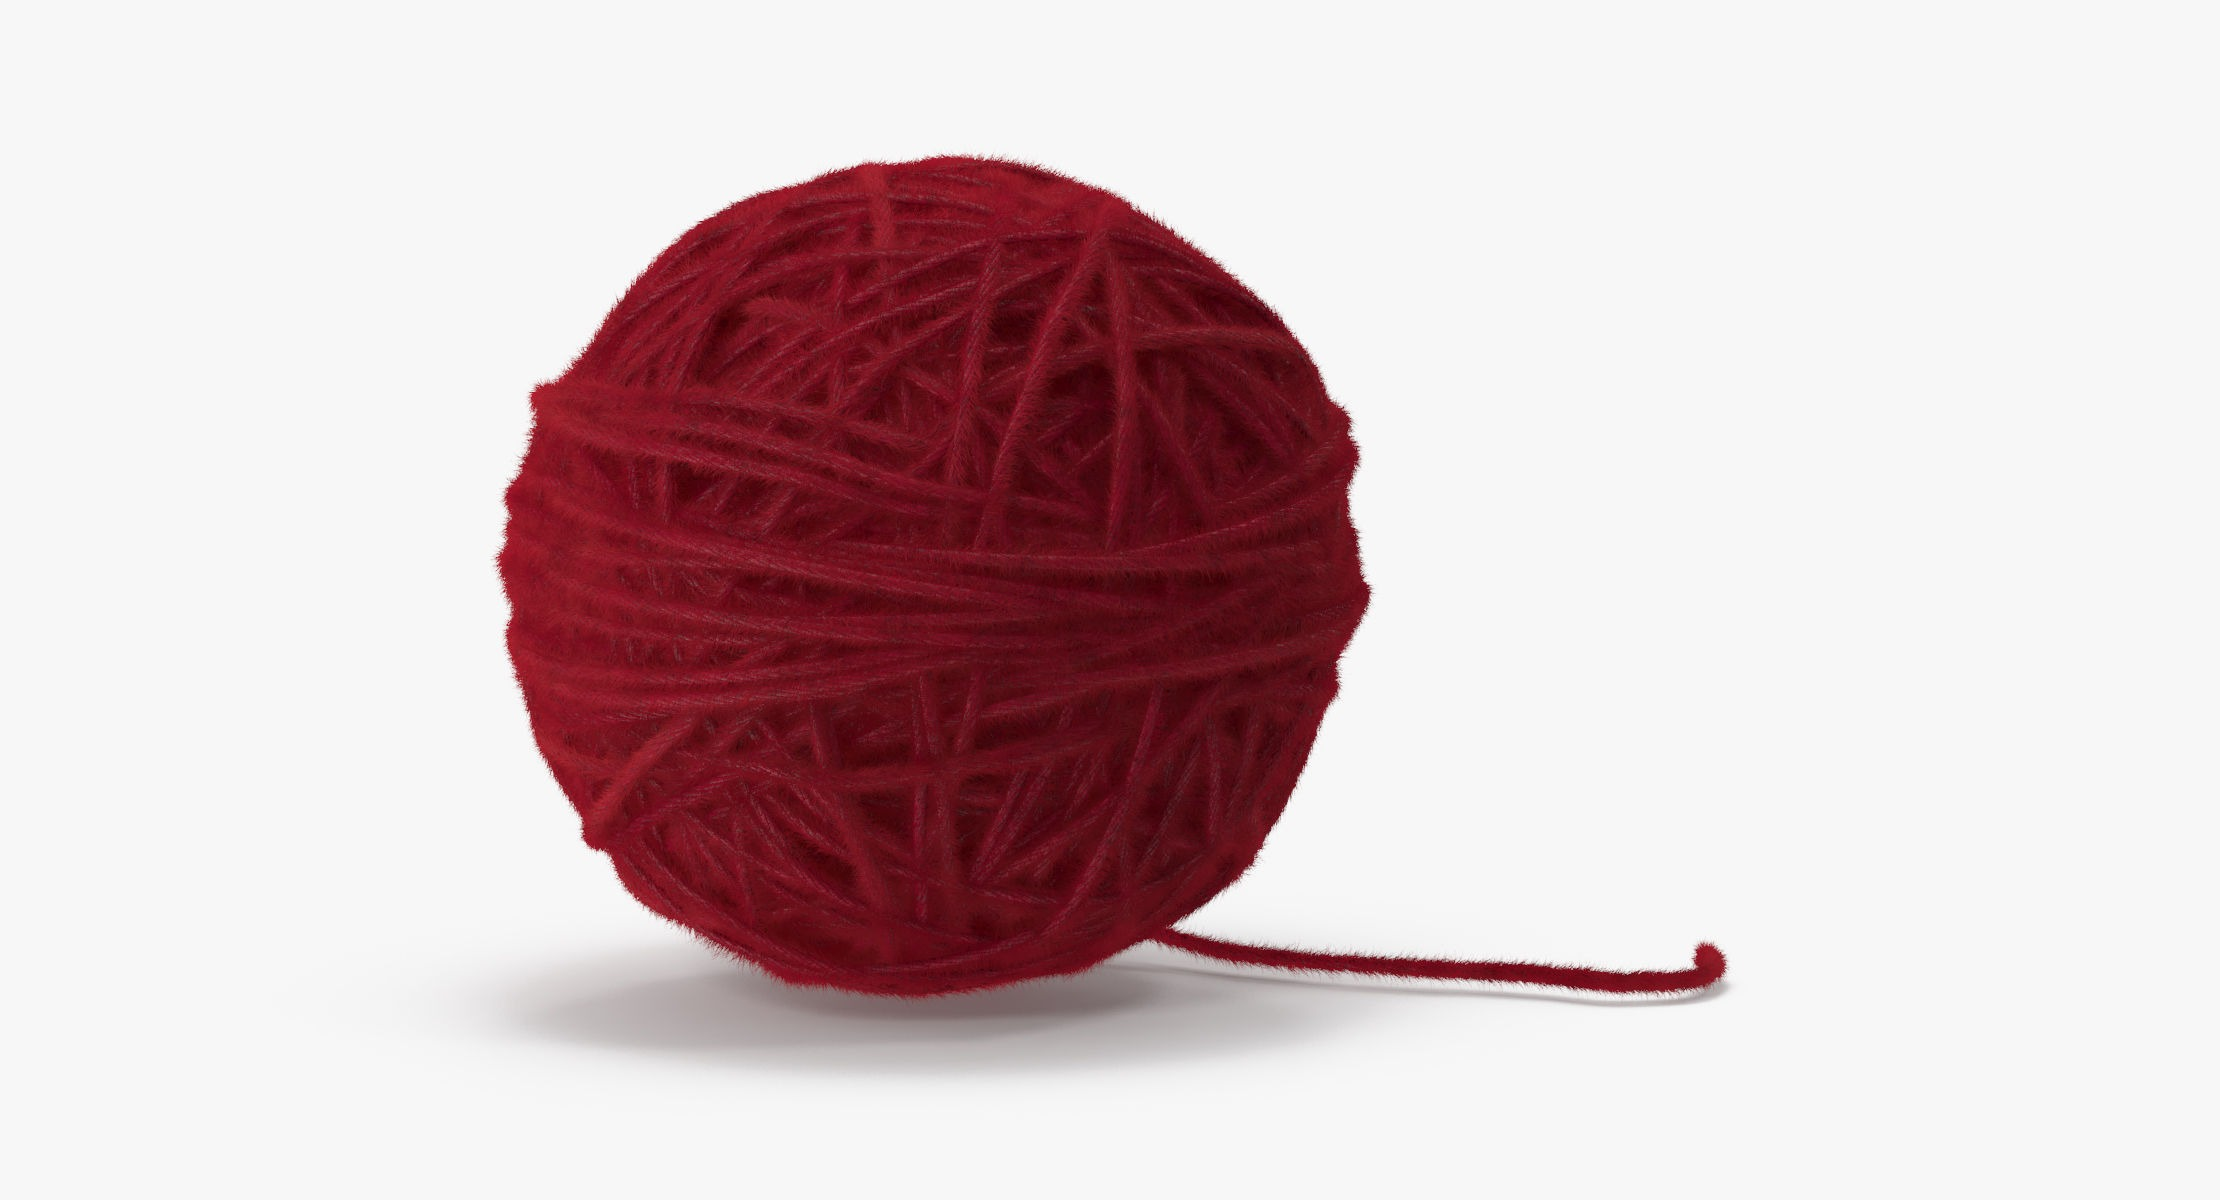 Ball of Yarn Red - reel 1